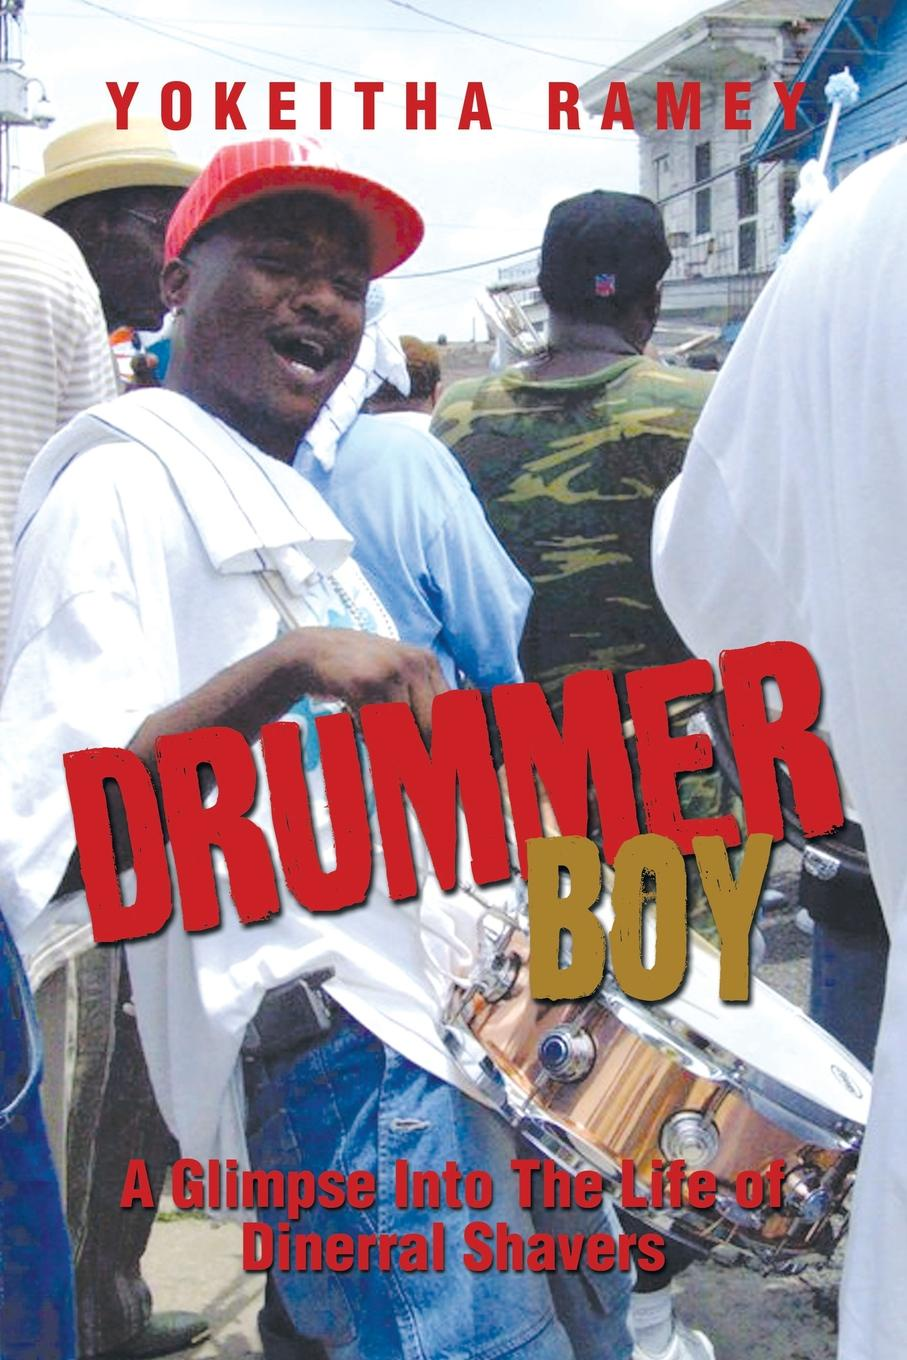 Фото - Yokeitha Ramey Drummer Boy. A Glimpse Into the Life of Dinerral Shavers joseph gillow the haydock papers a glimpse into english catholic life under the shade of persecution and in the dawn of freedom